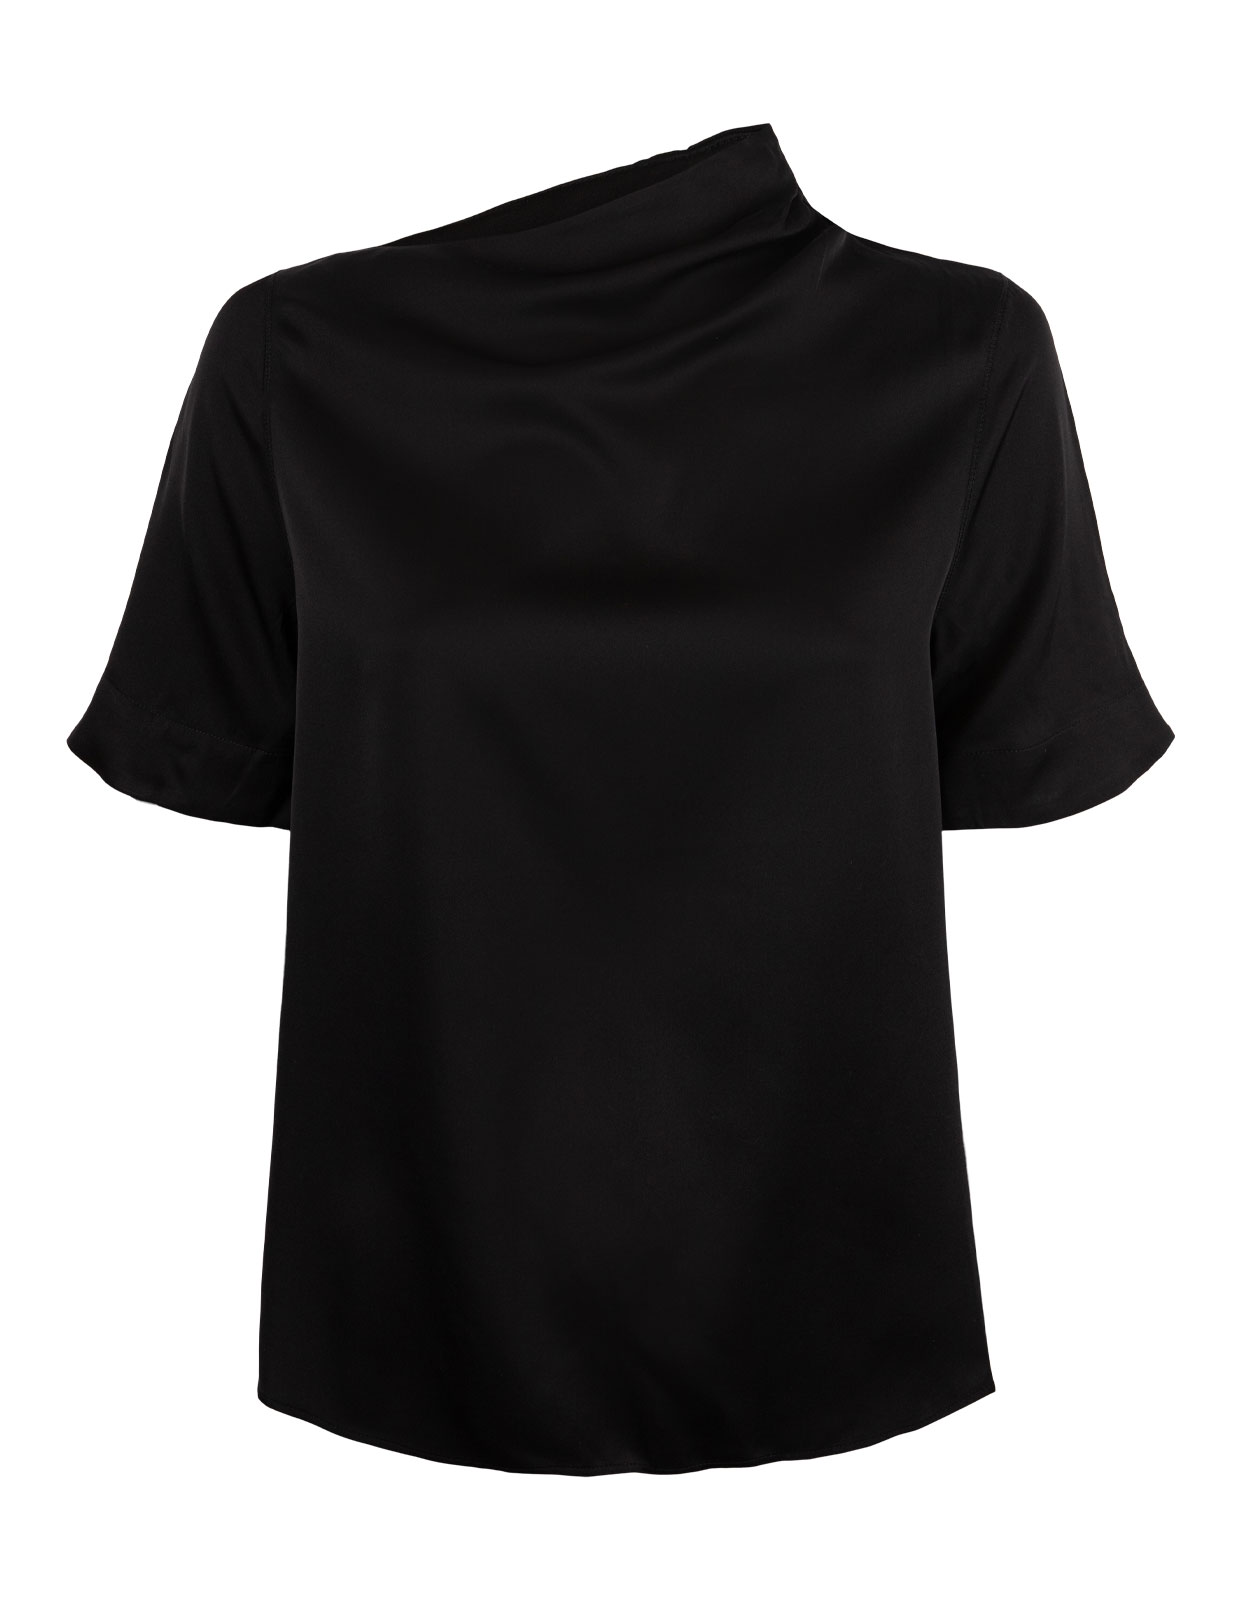 Lima Tee Blouse Black